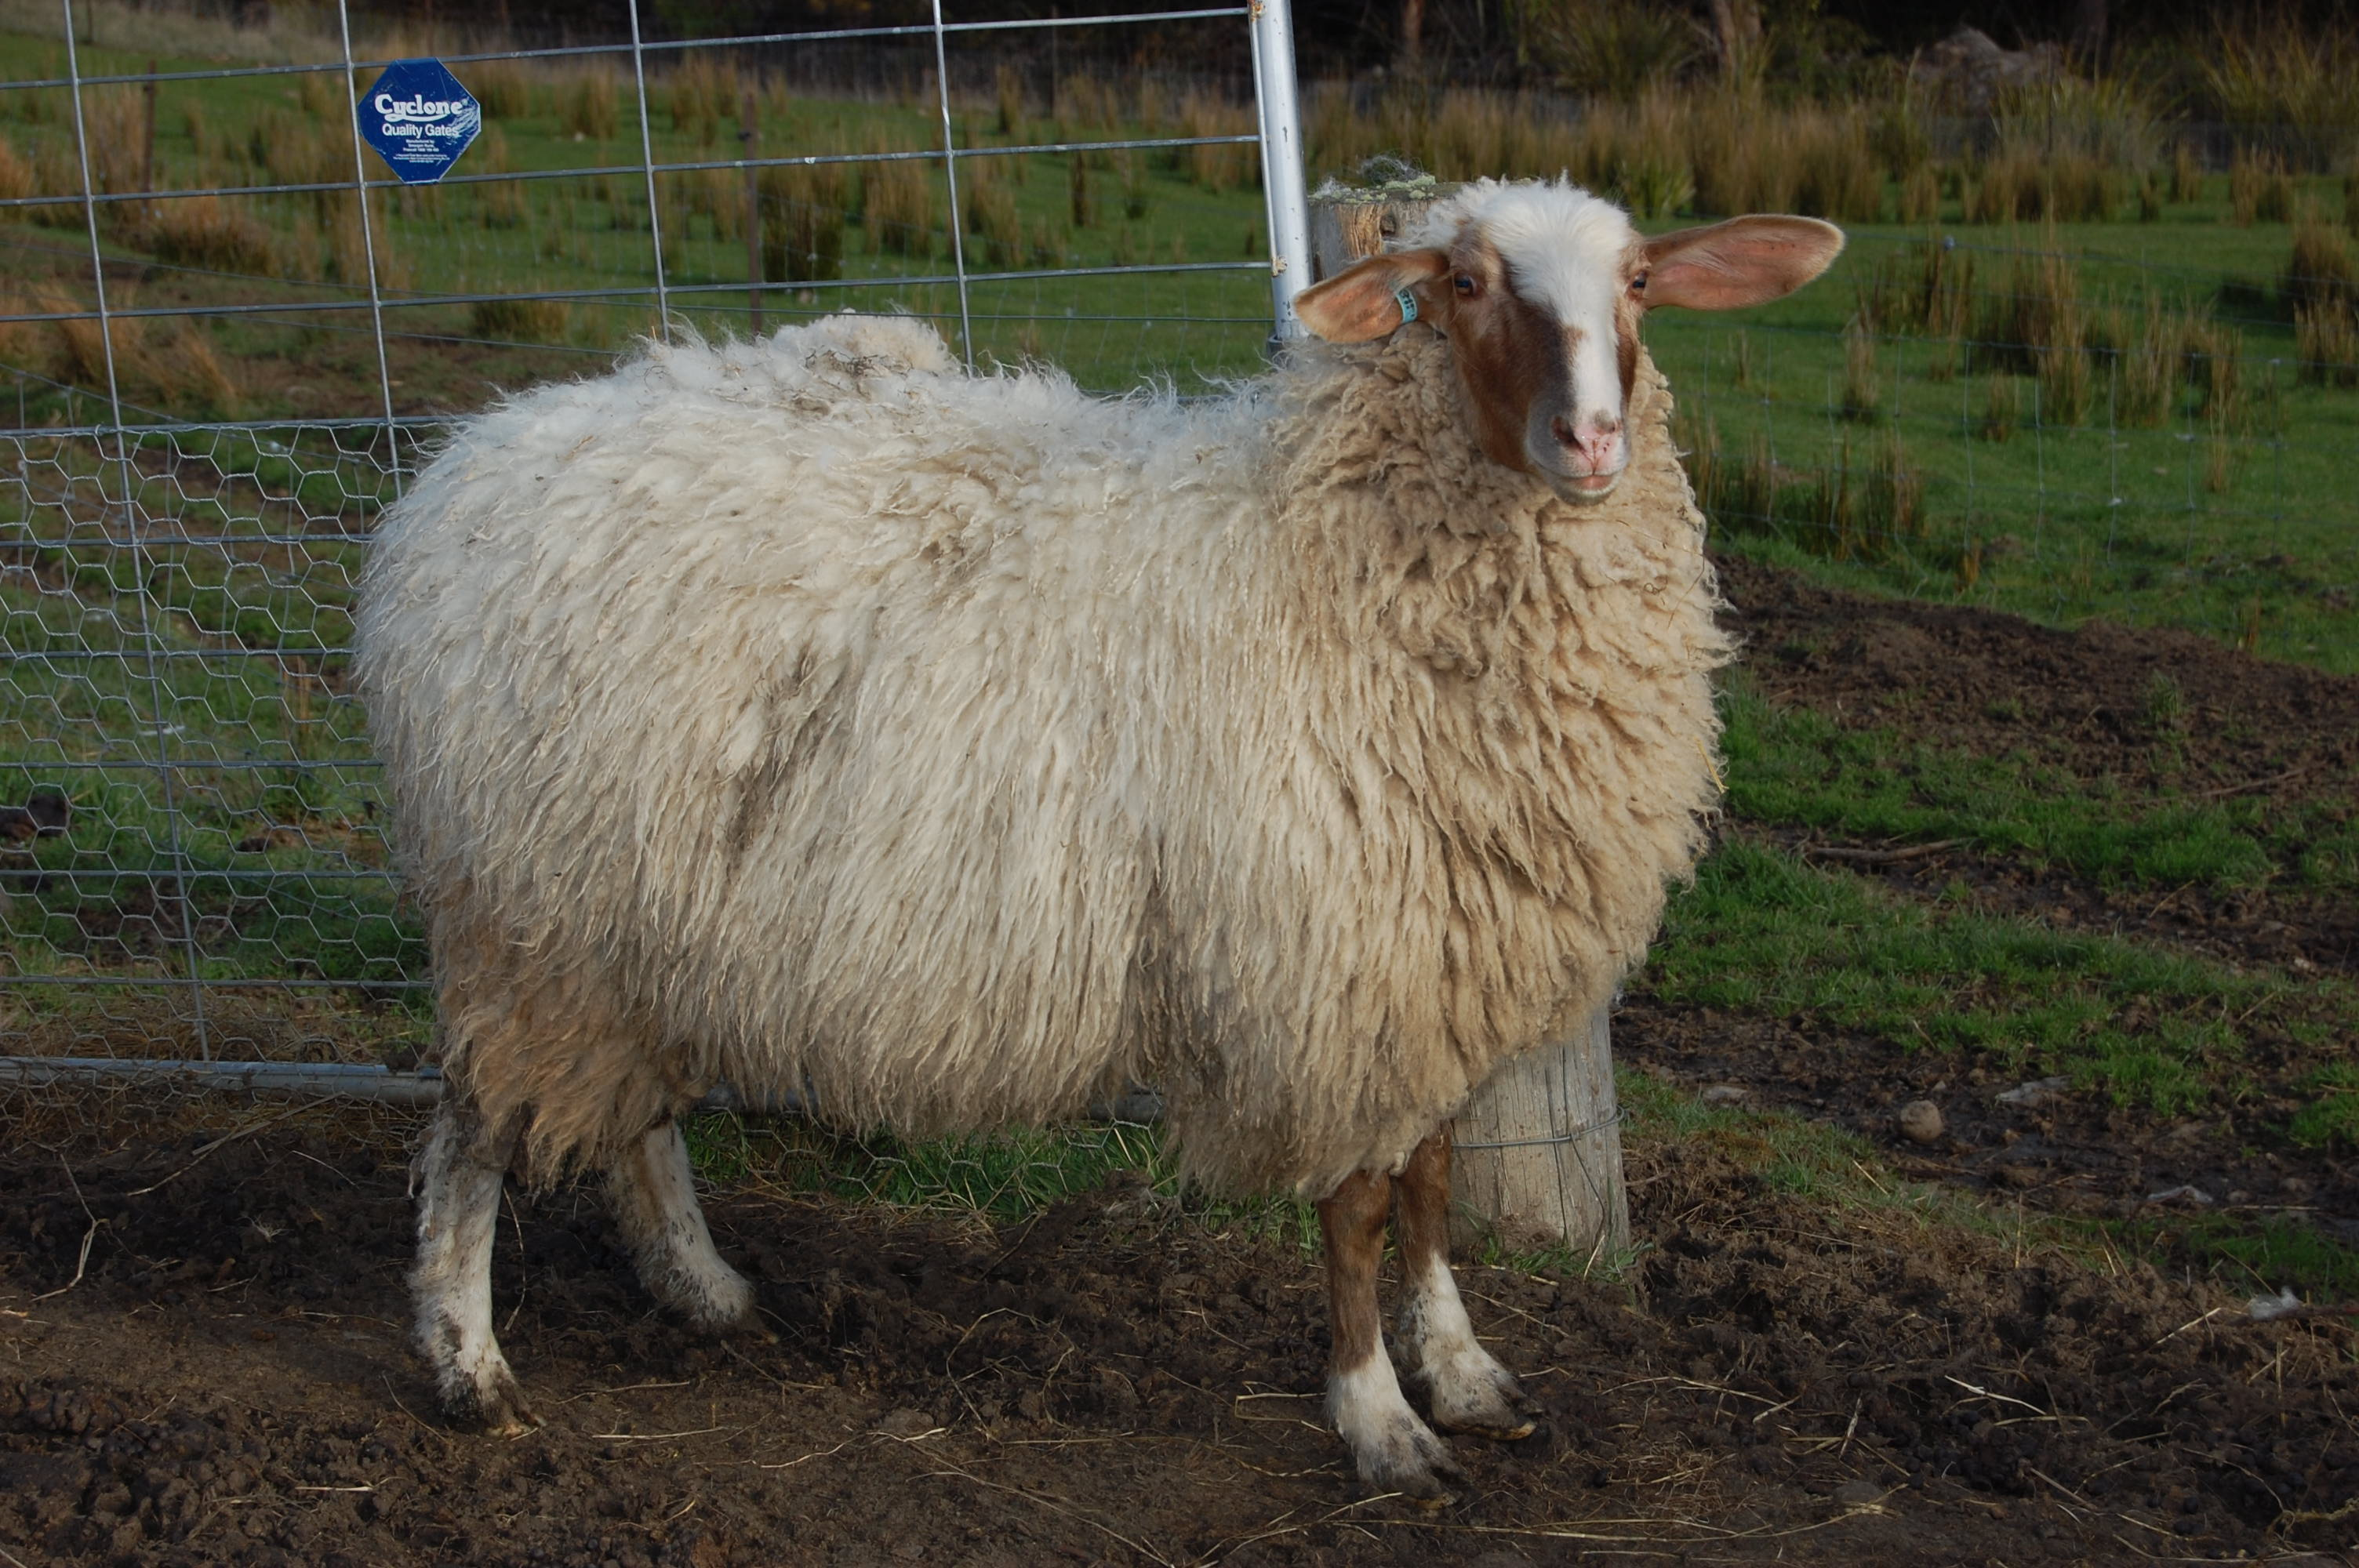 Sheep Genetics for Sale | Grandvewe Dairysheep